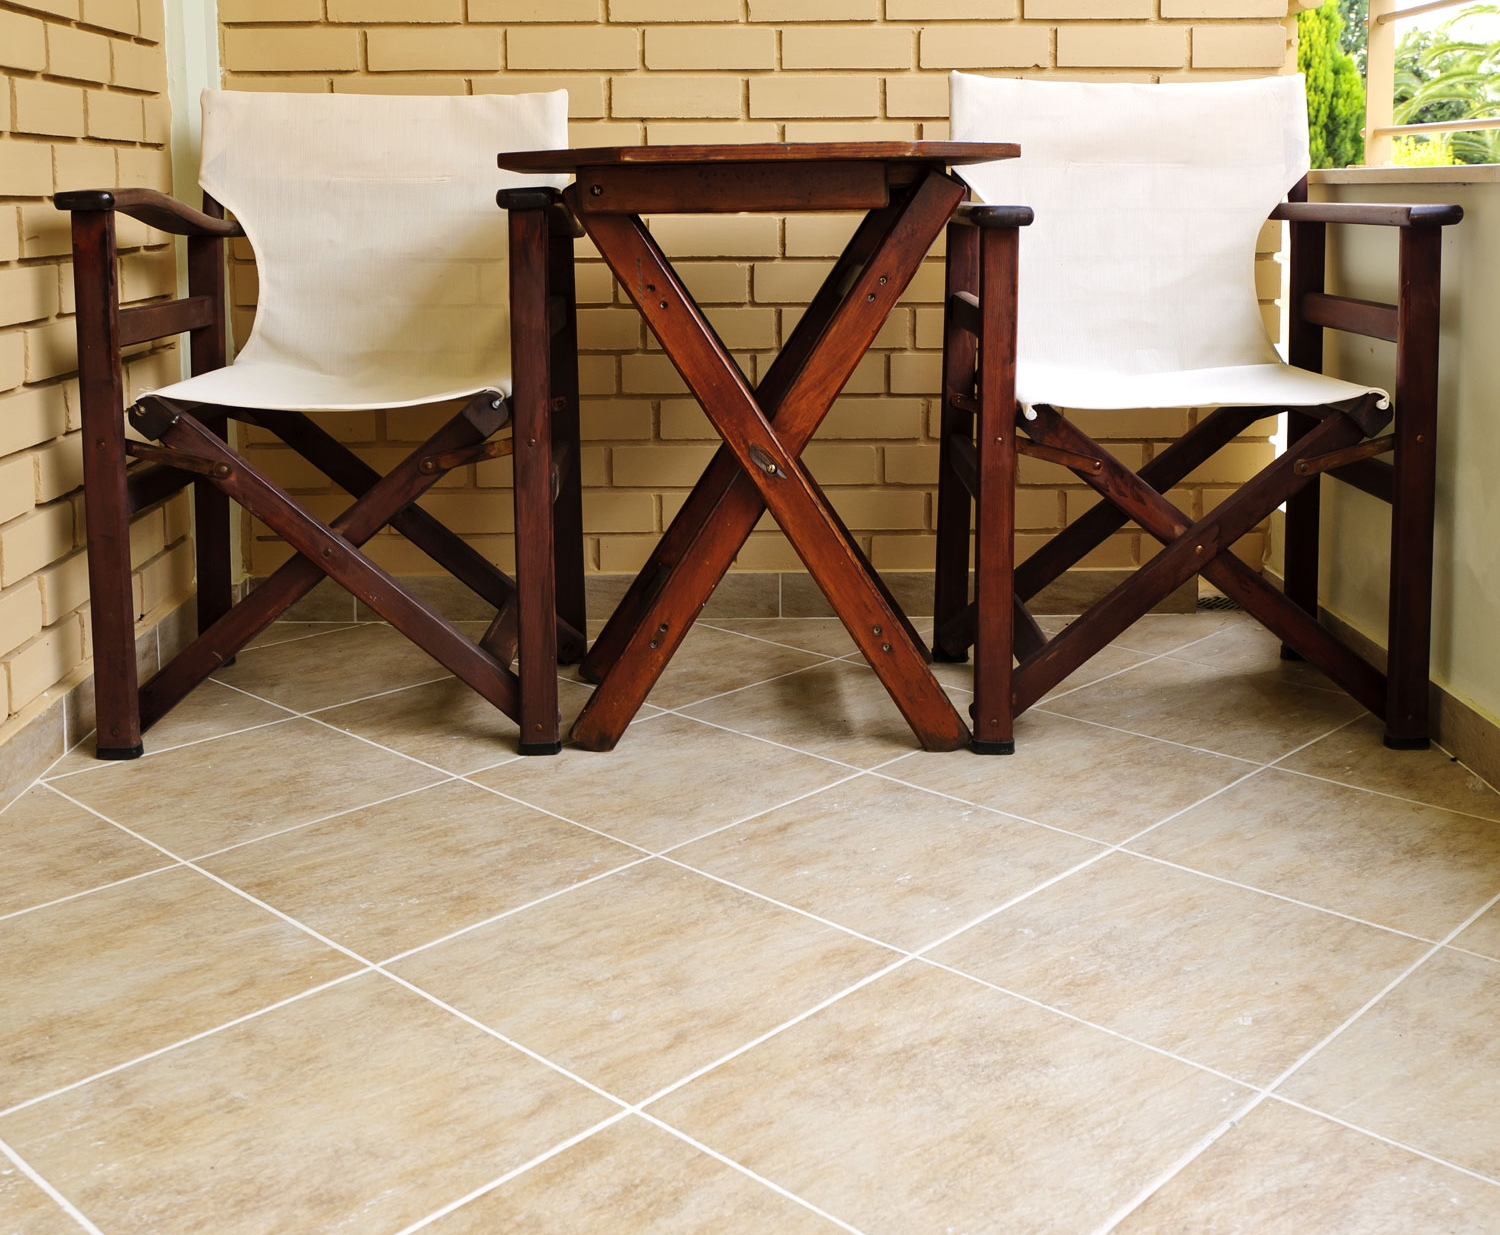 Tile & Grout - cleaning and sealing